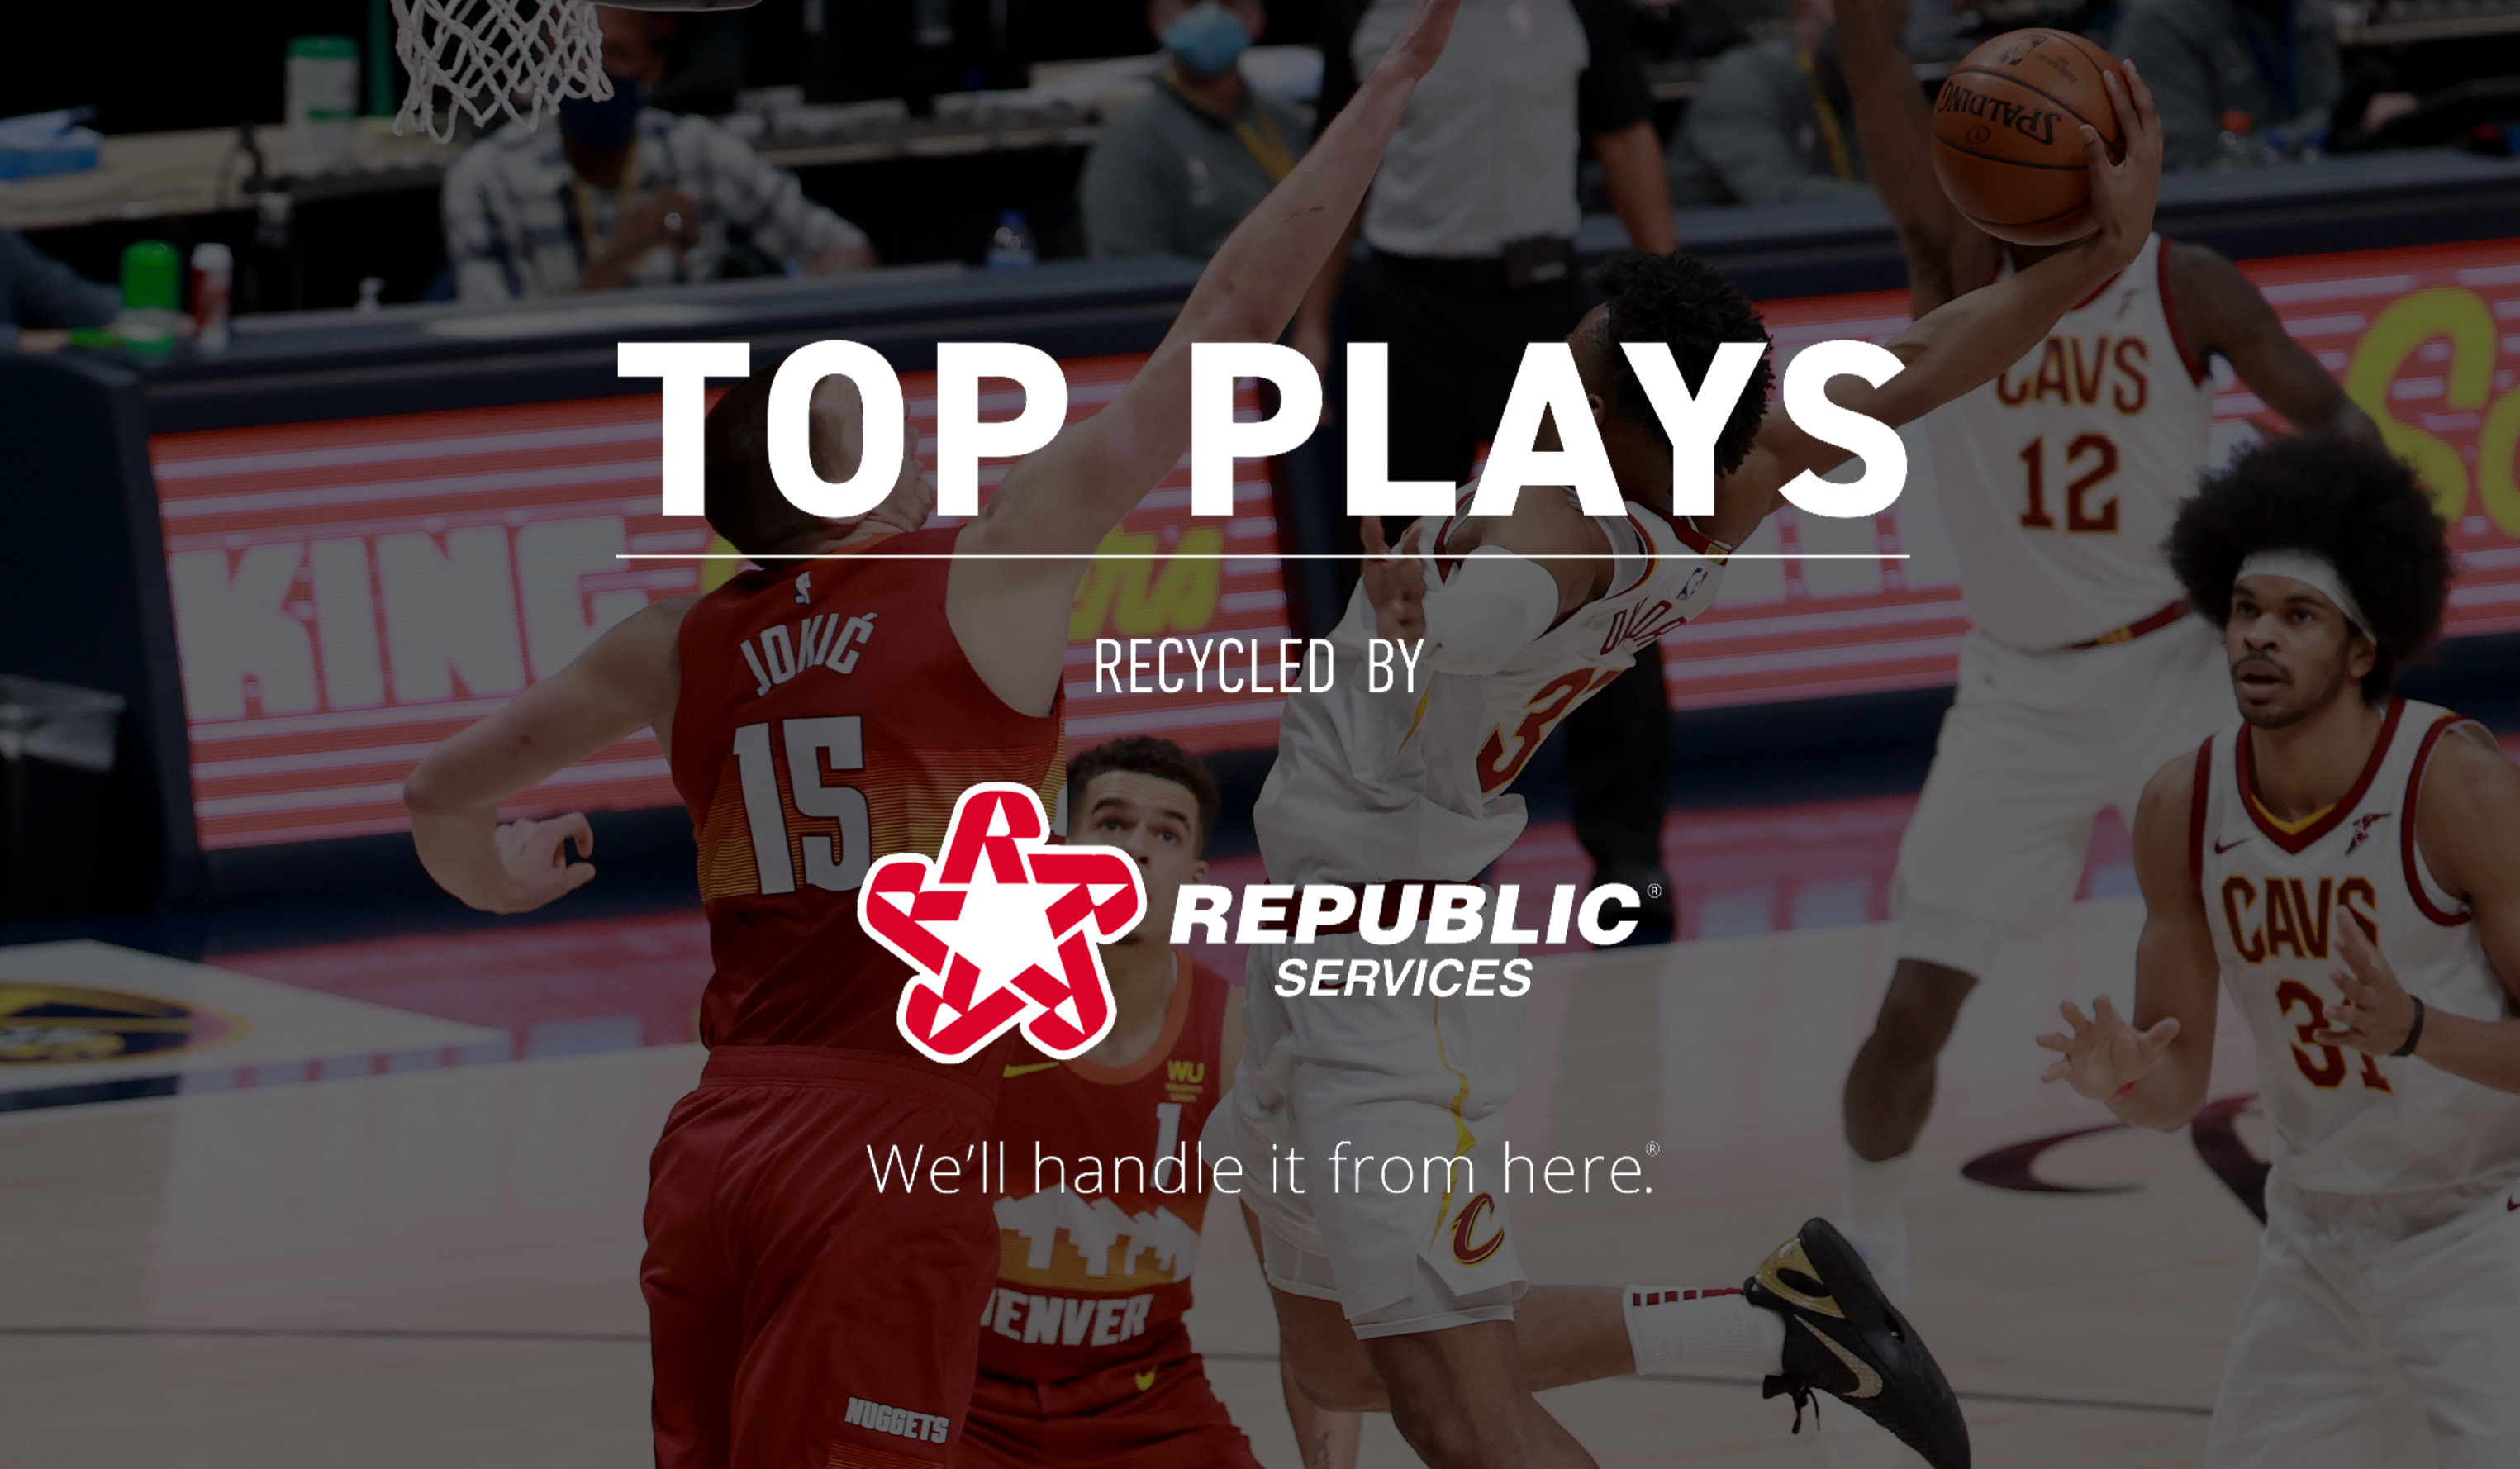 Top Plays of the Year, Recycled by Republic Services